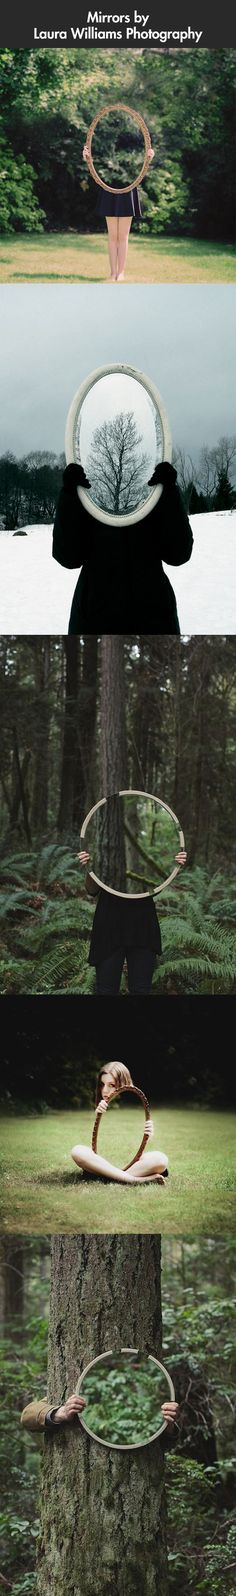 Playing with mirrors… this is awesome! I would love to try this in a photo shoot with someone!!!